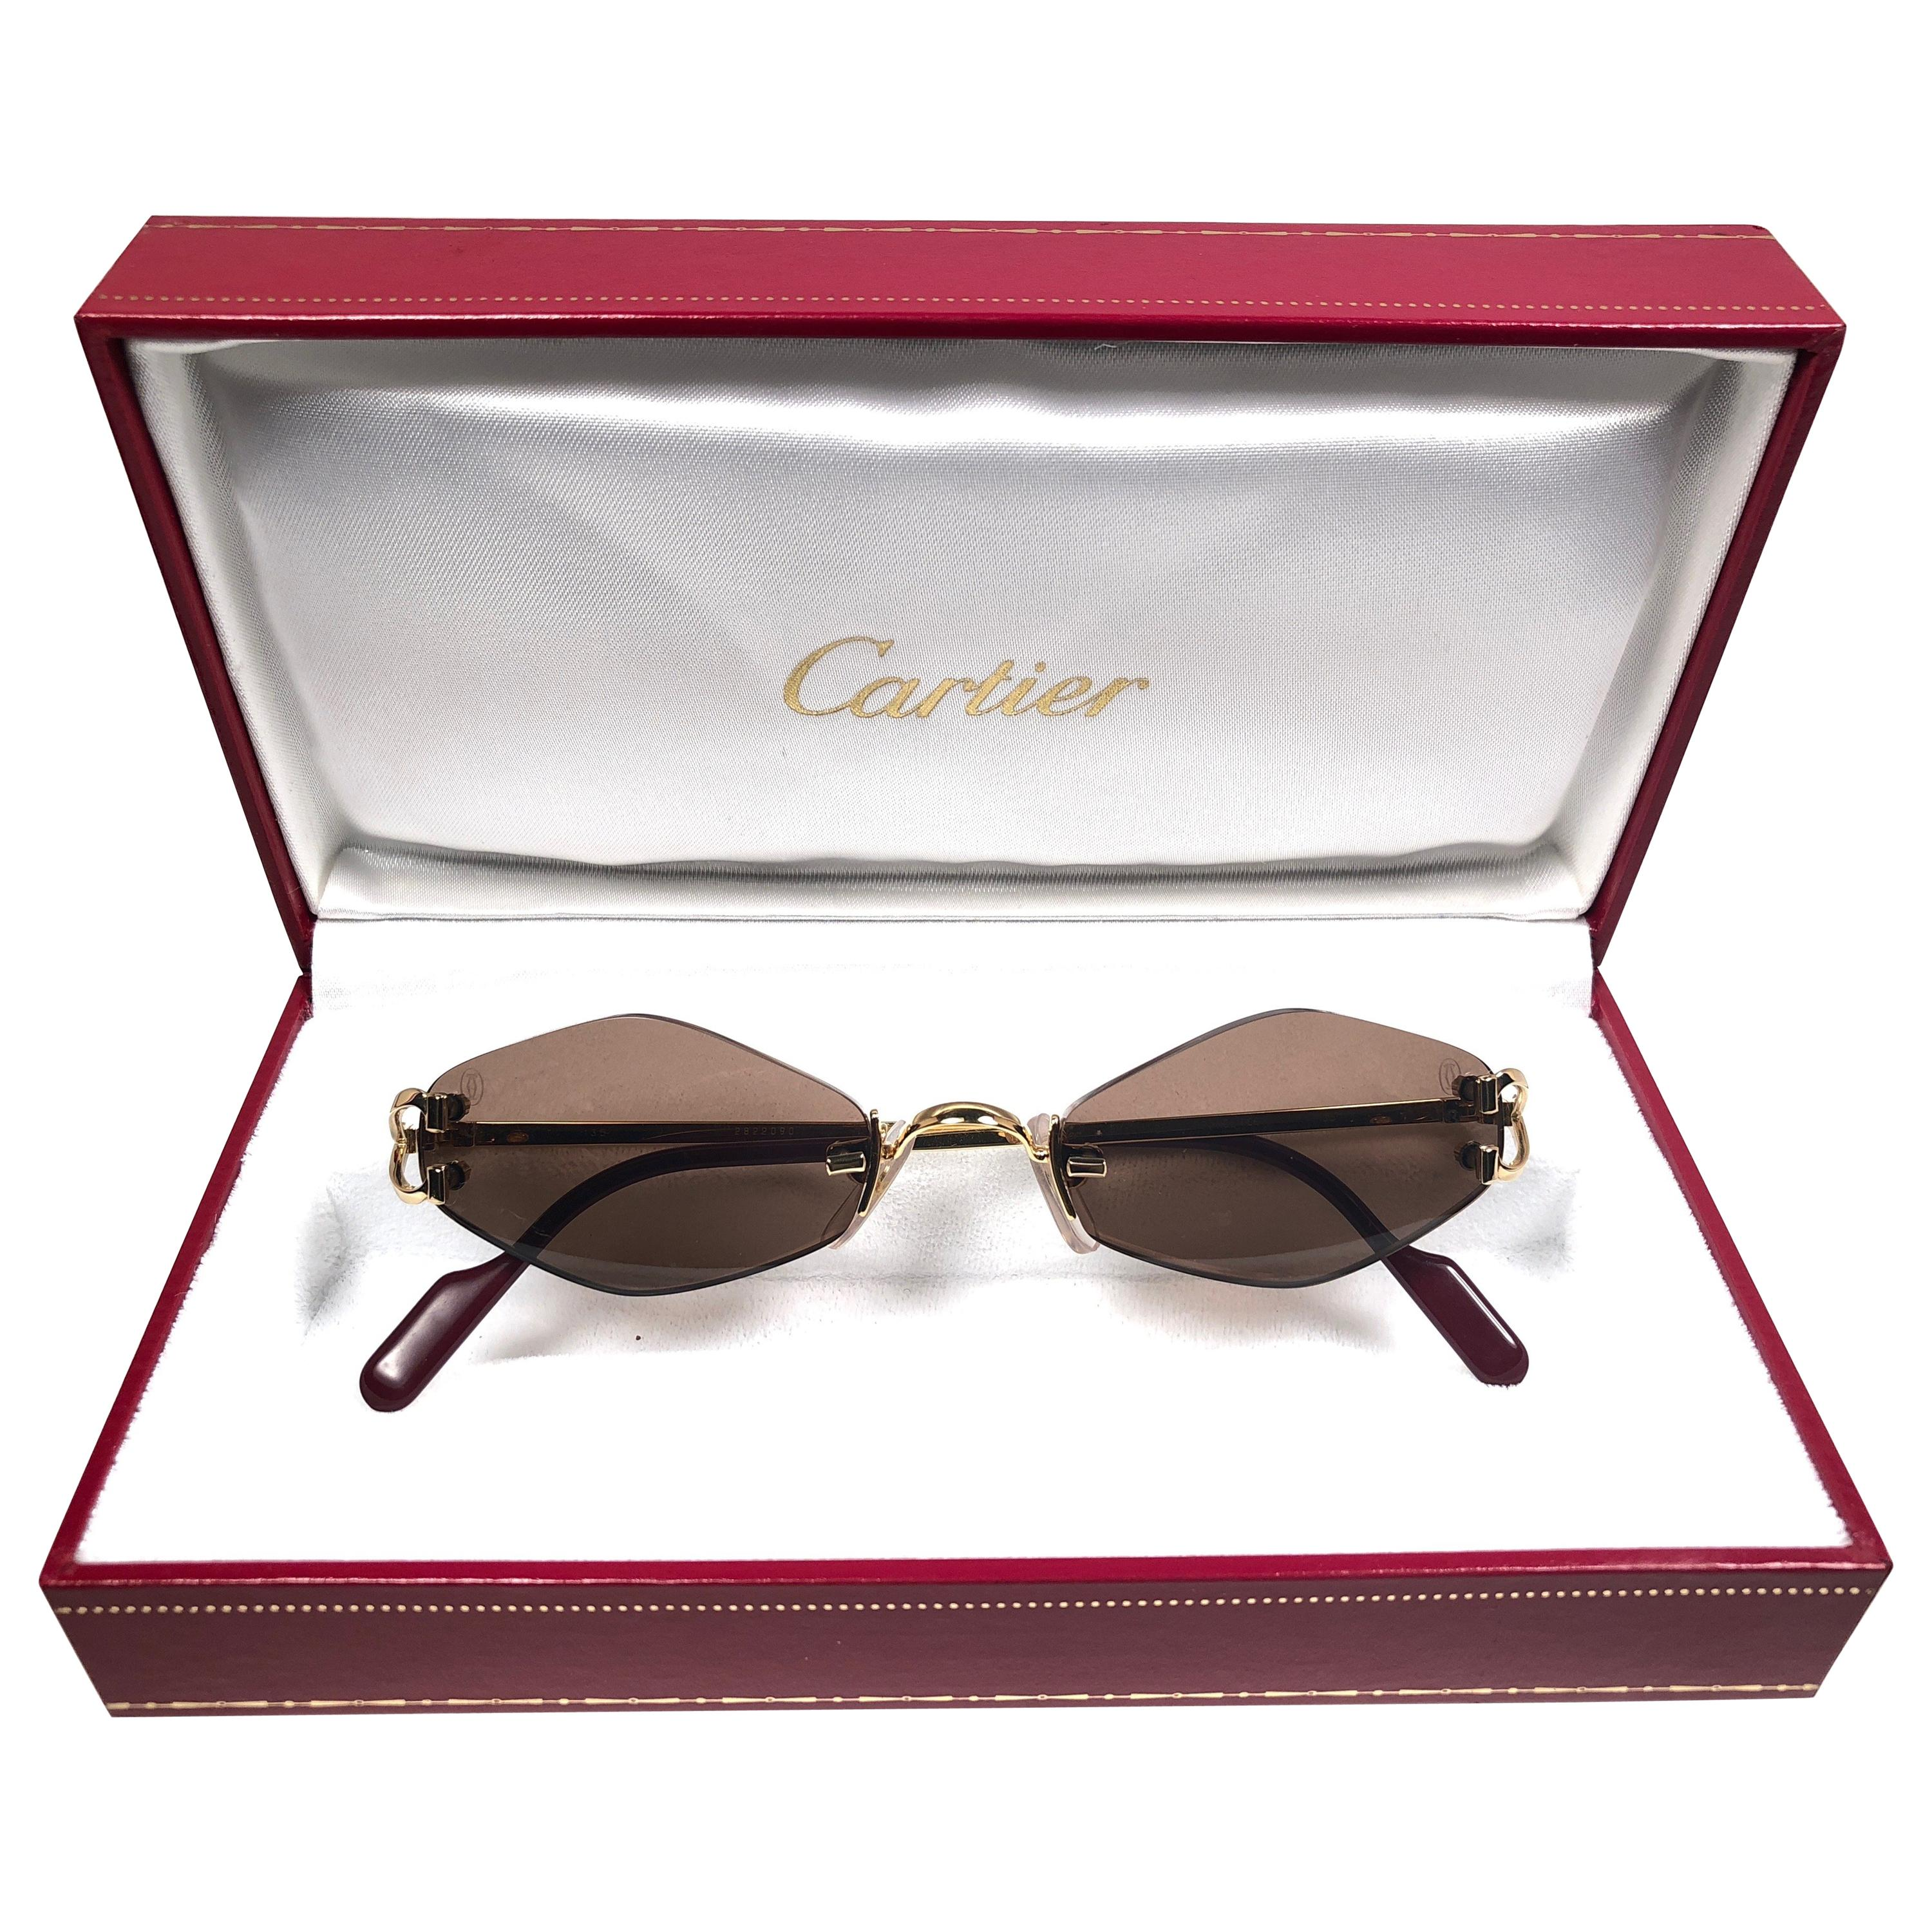 e3fbf6edeeaf1 New Vintage Cartier Soho Gold Rimless Brown Lens France Sunglasses at  1stdibs